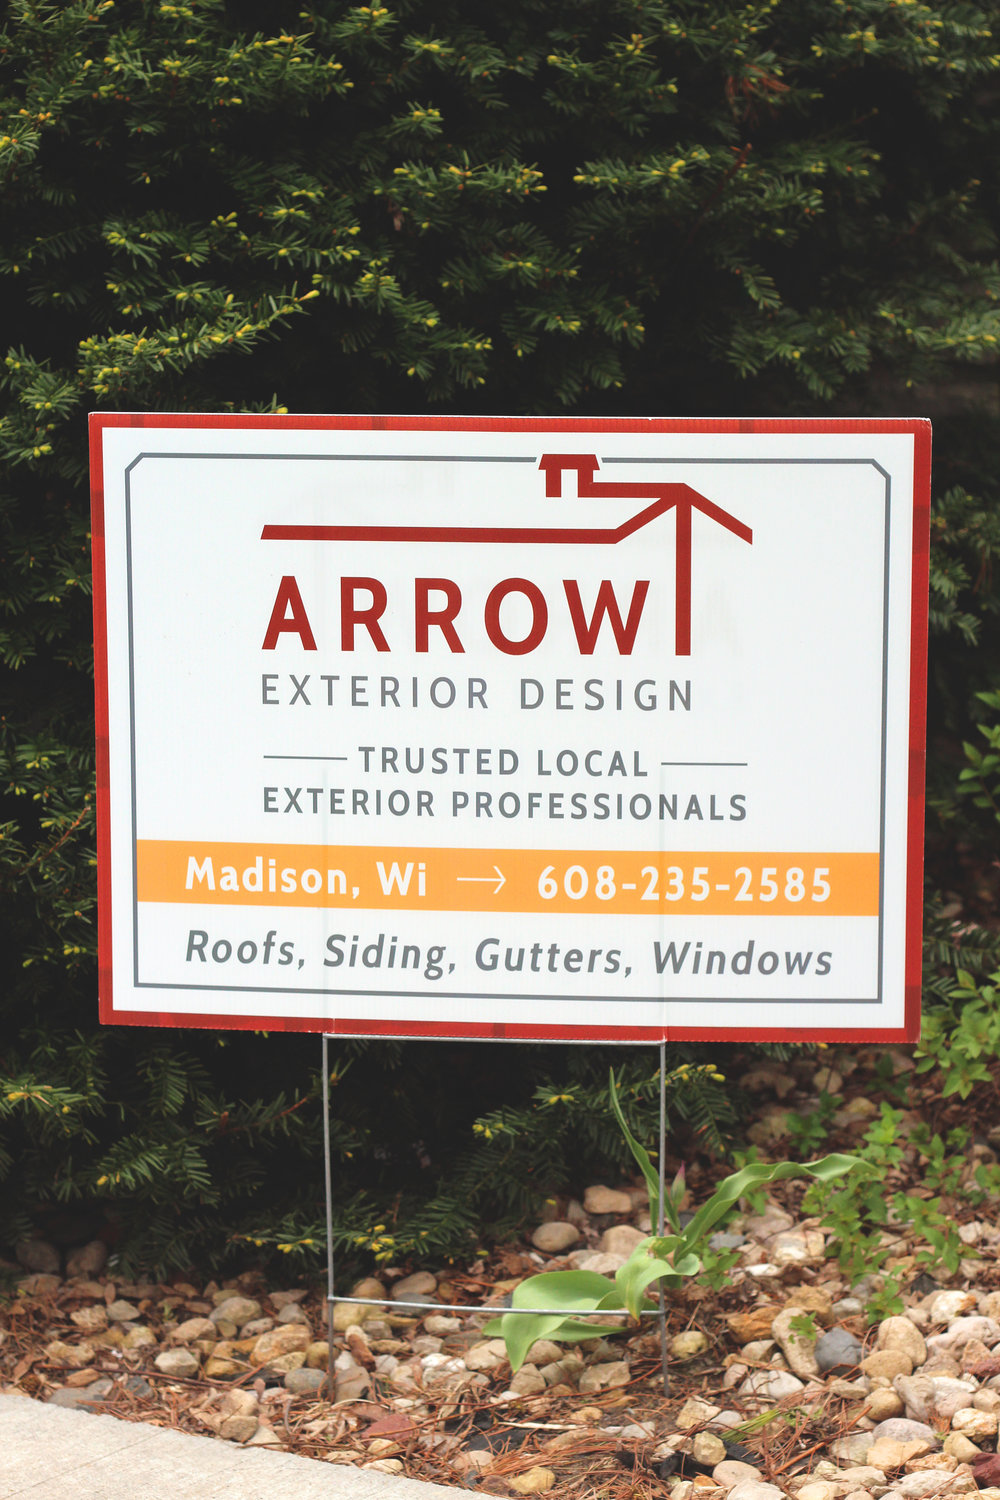 holly avenue designs madison arrow exterior design lawn sign outside promotion